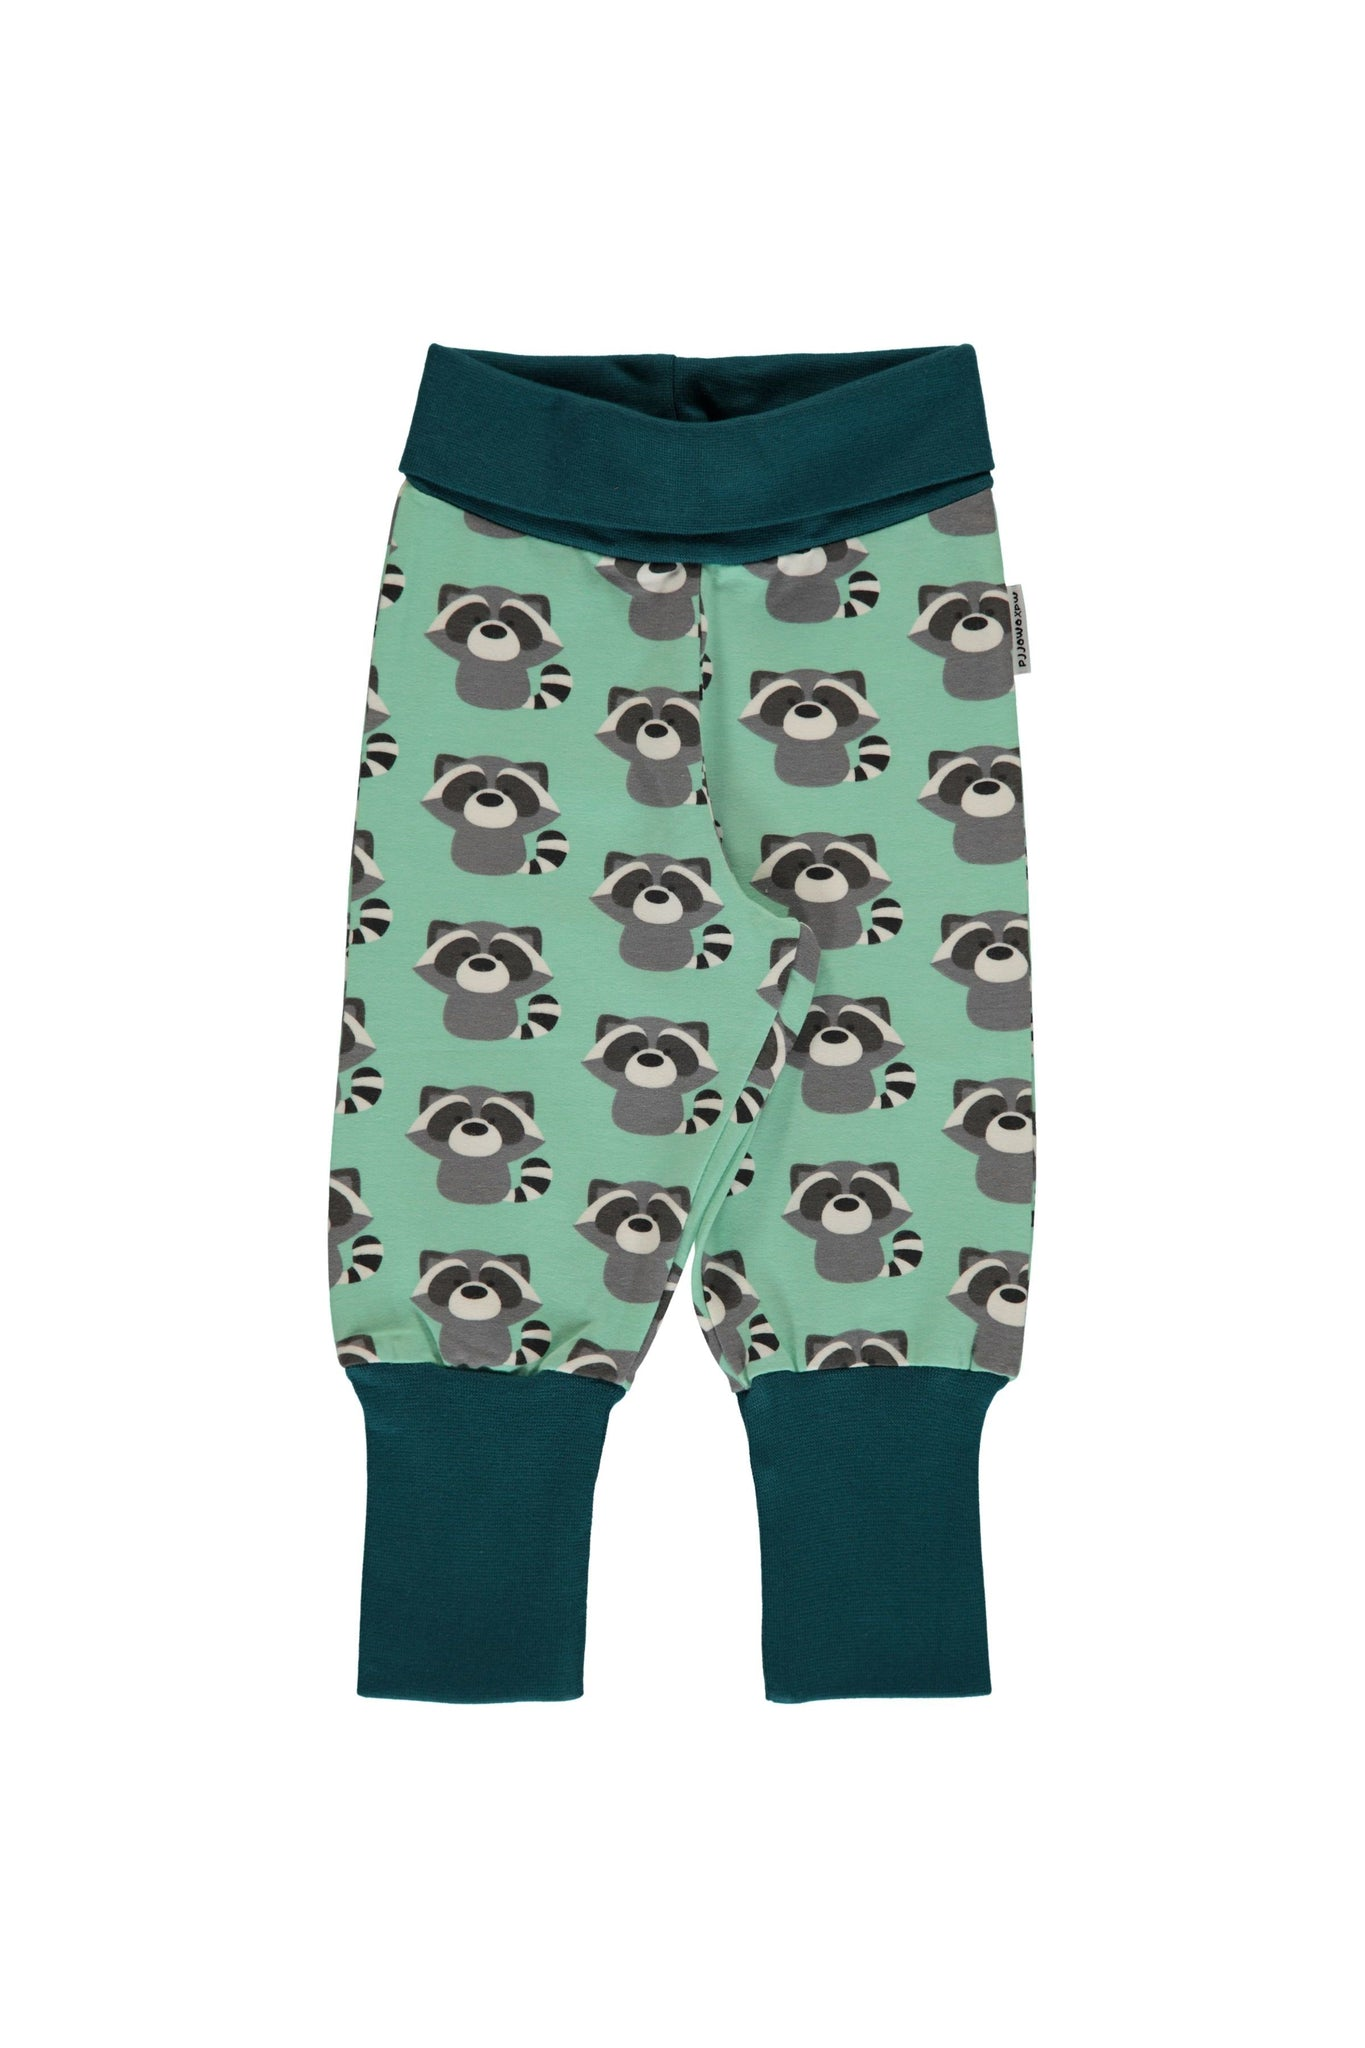 Raccoon - Rib - Pants - Maxomorra Fashion - Snugglefox